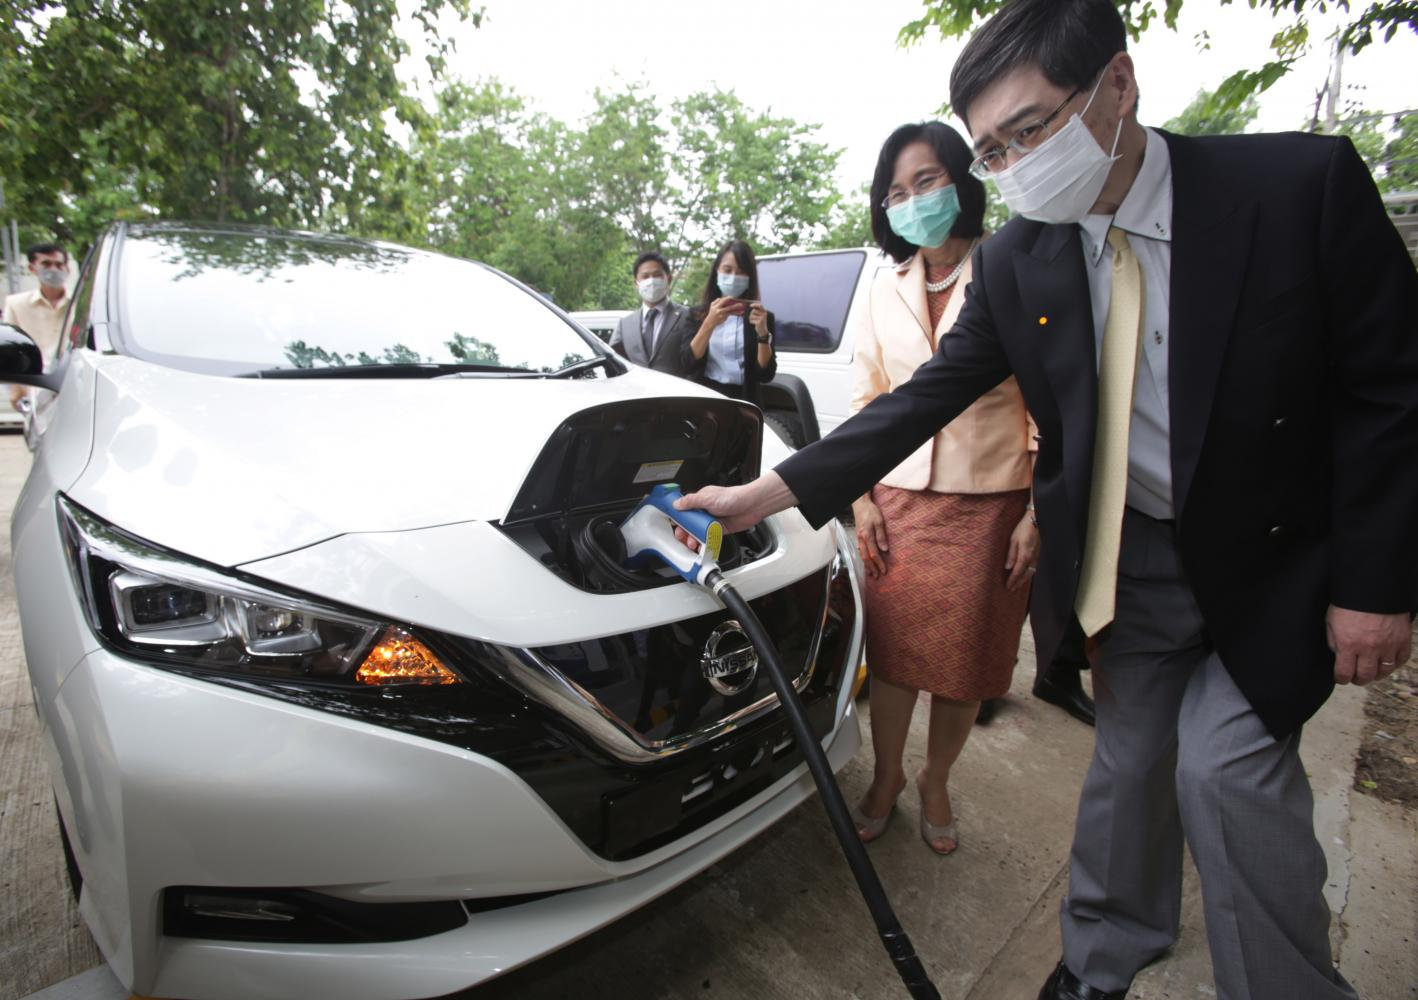 The Embassy of Japan recently delivered EVs and charging stations to the Thailand Institute of Scientific and Technological Research.(Photo by Apichit Jinakul)